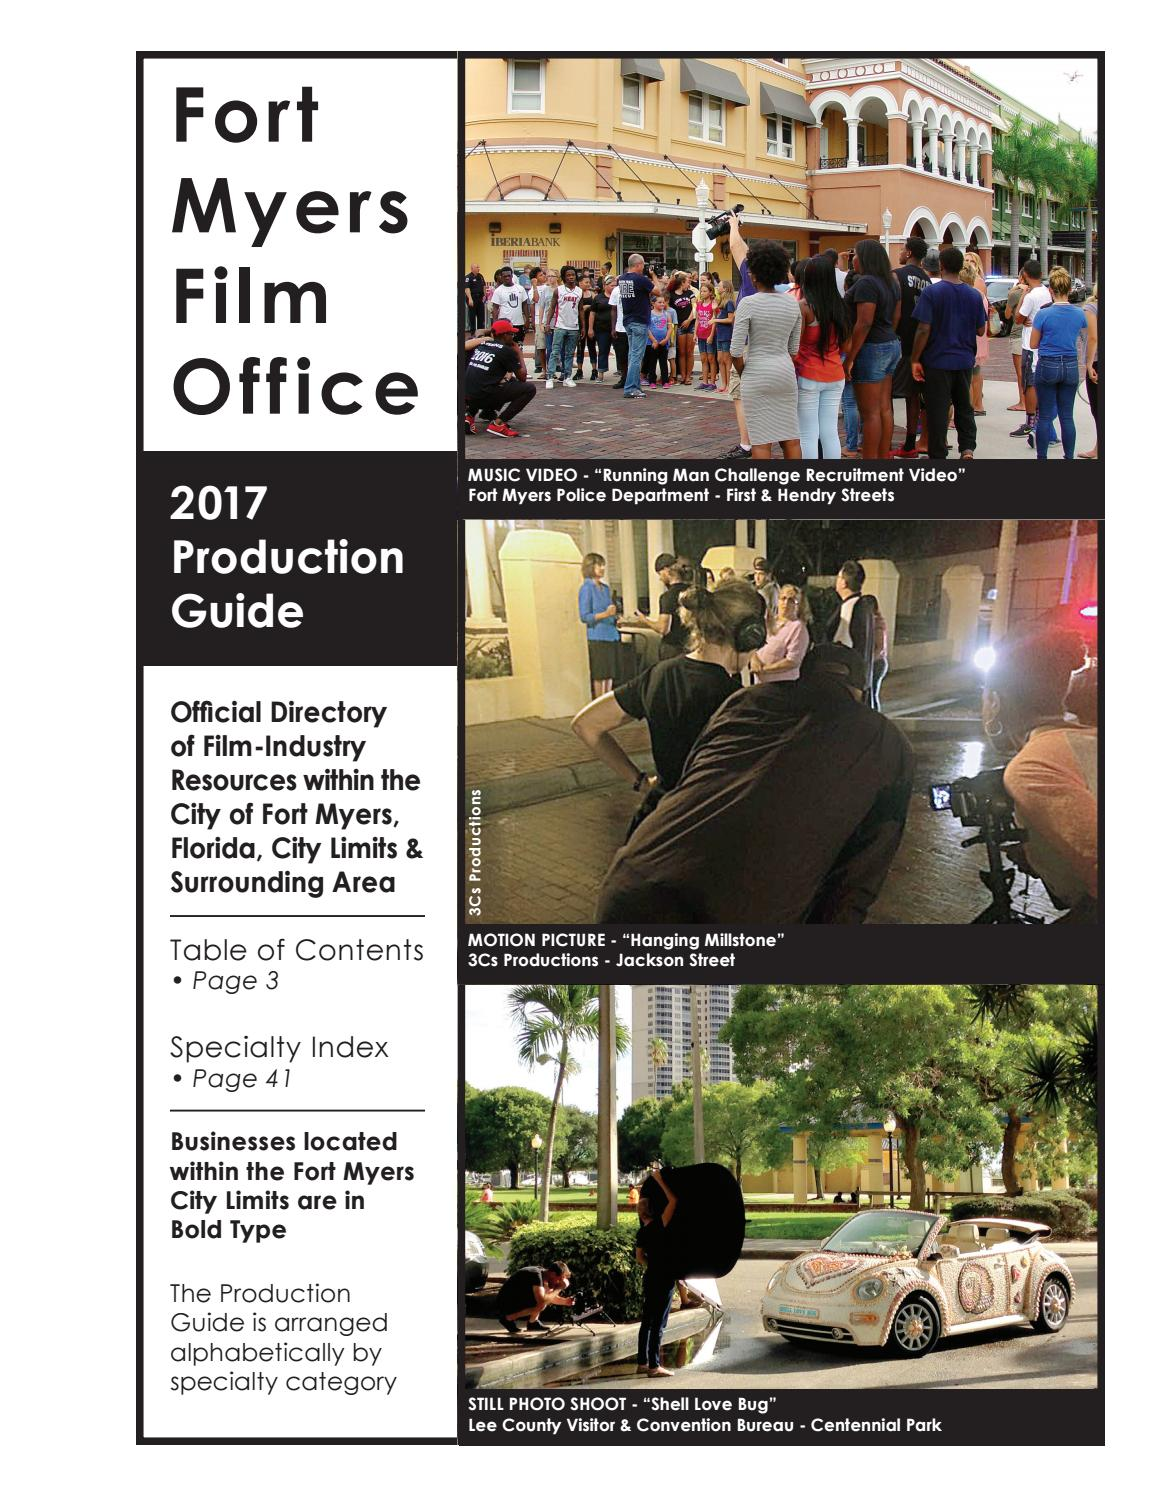 Fort Myers Film Office Production Guide 2017